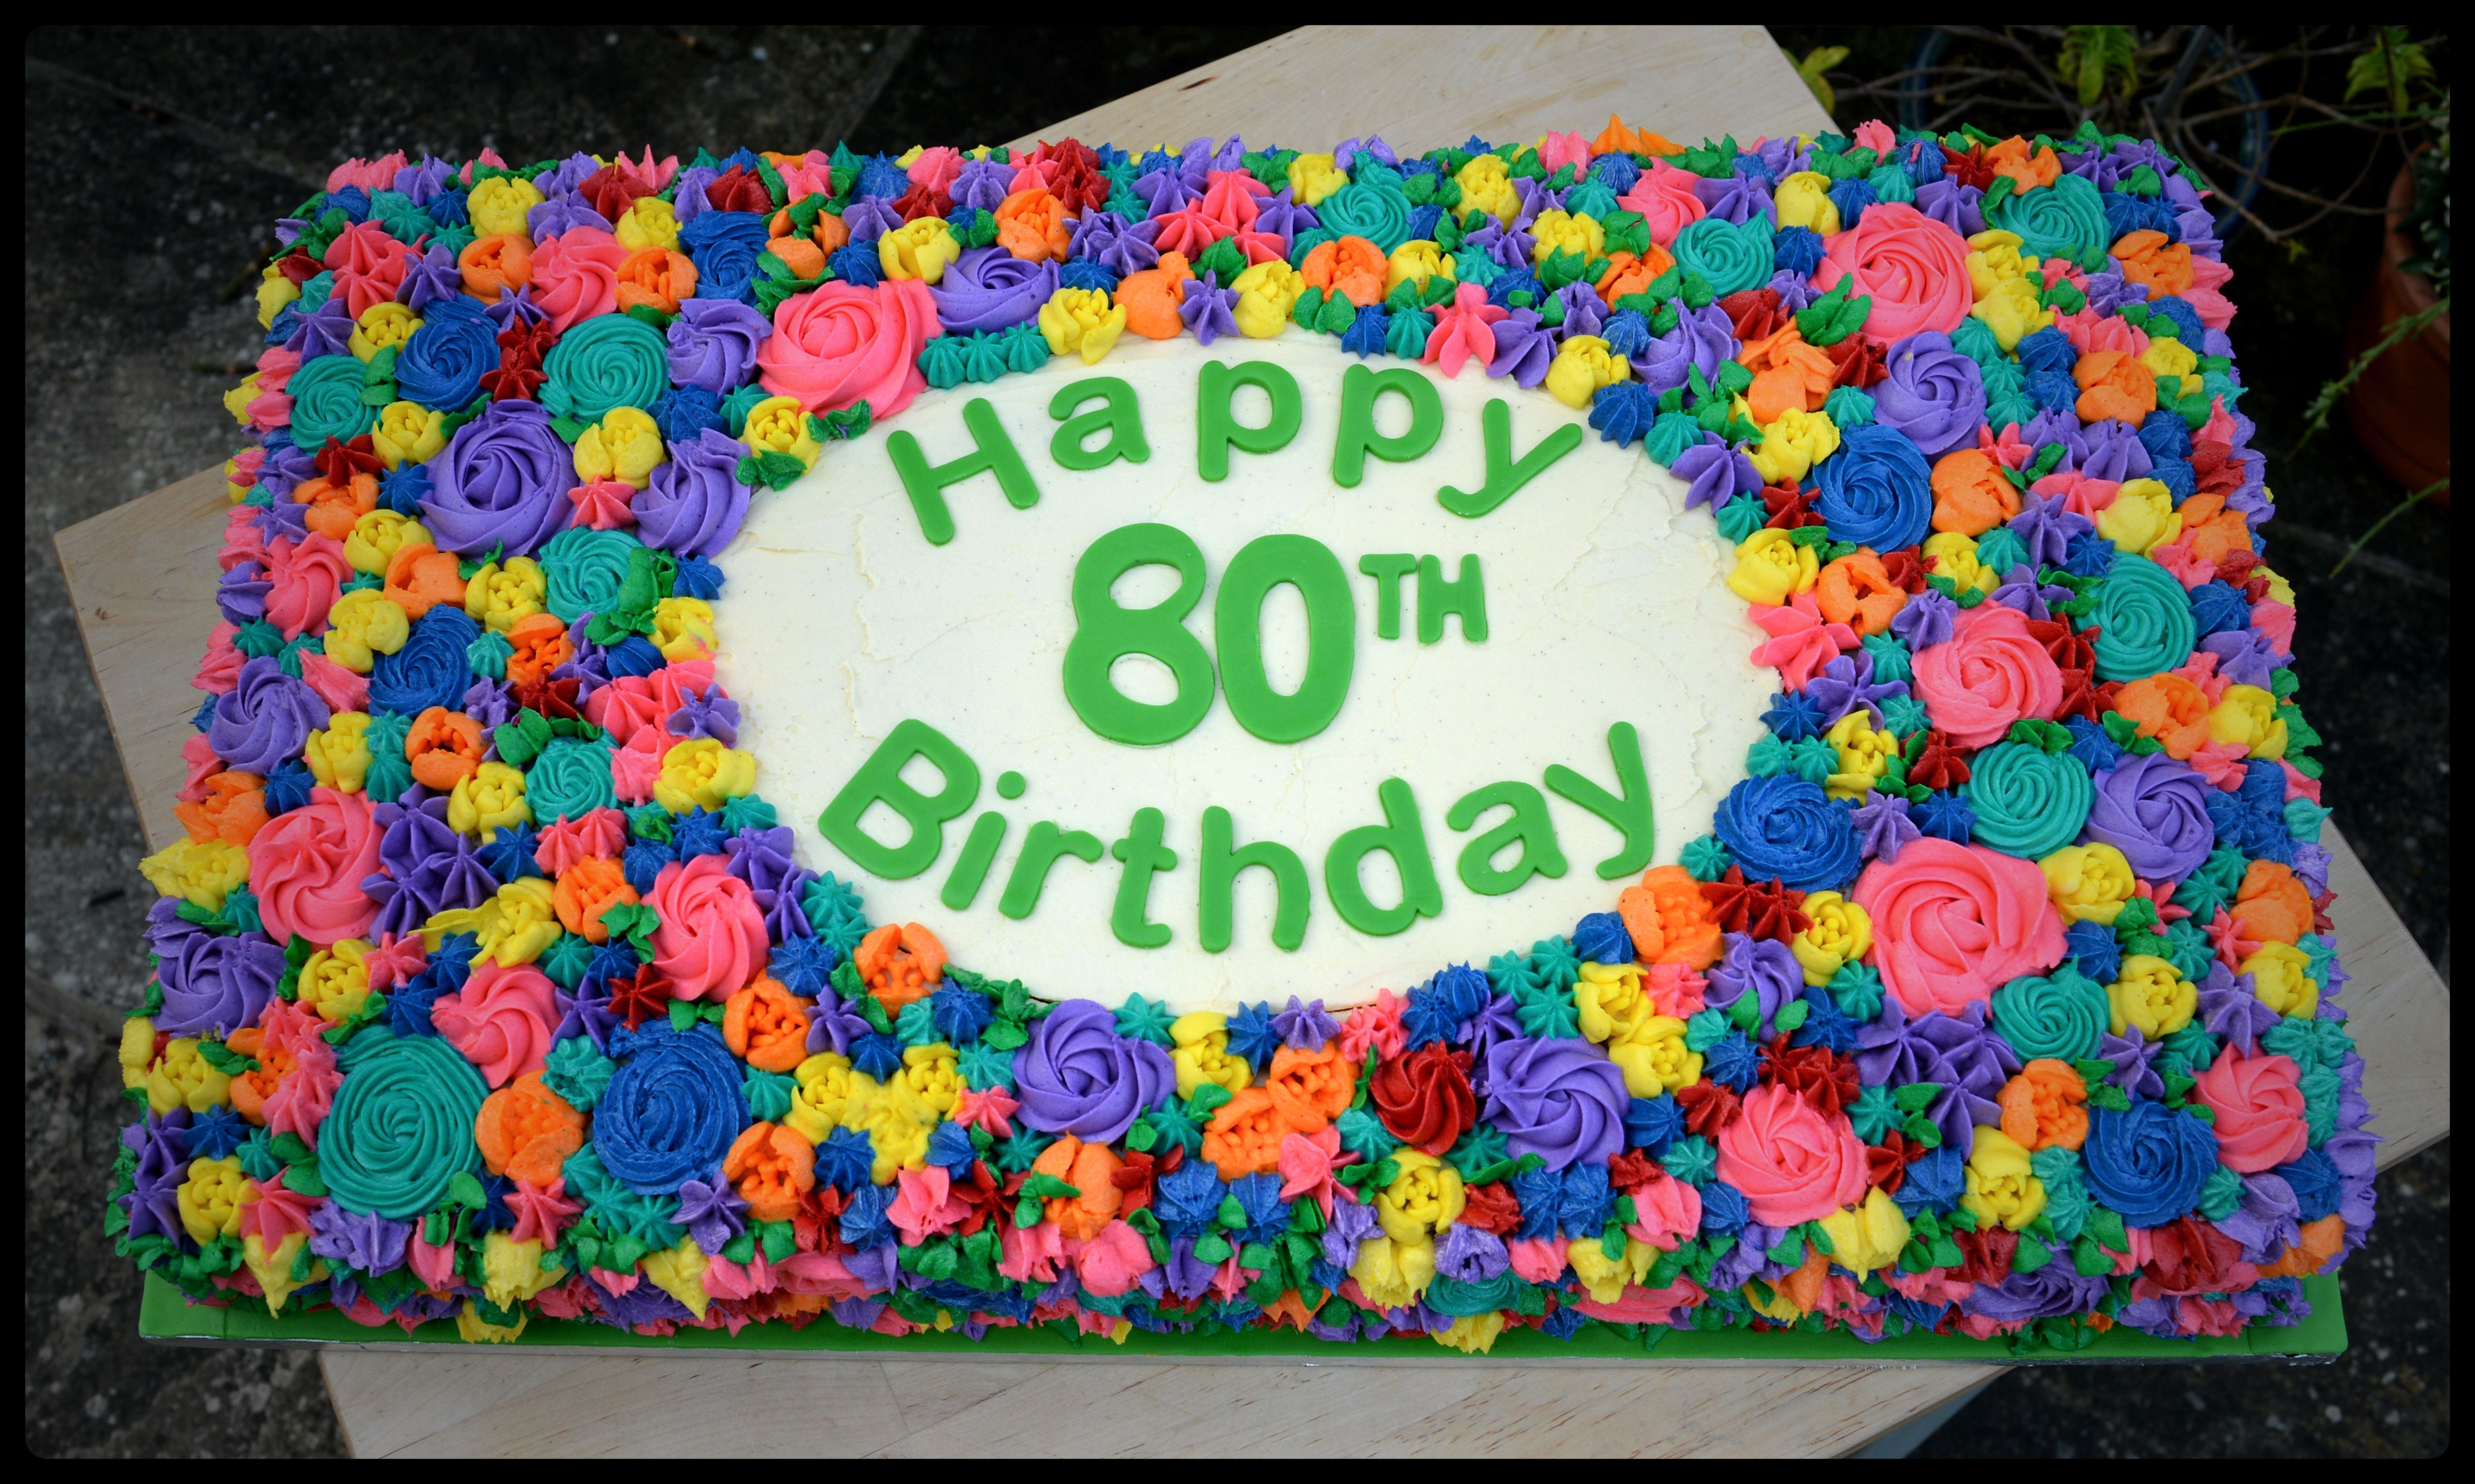 Outstanding Giant Flower Cake For 80Th Birthday Kingfisher Bakery Staverton Personalised Birthday Cards Sponlily Jamesorg